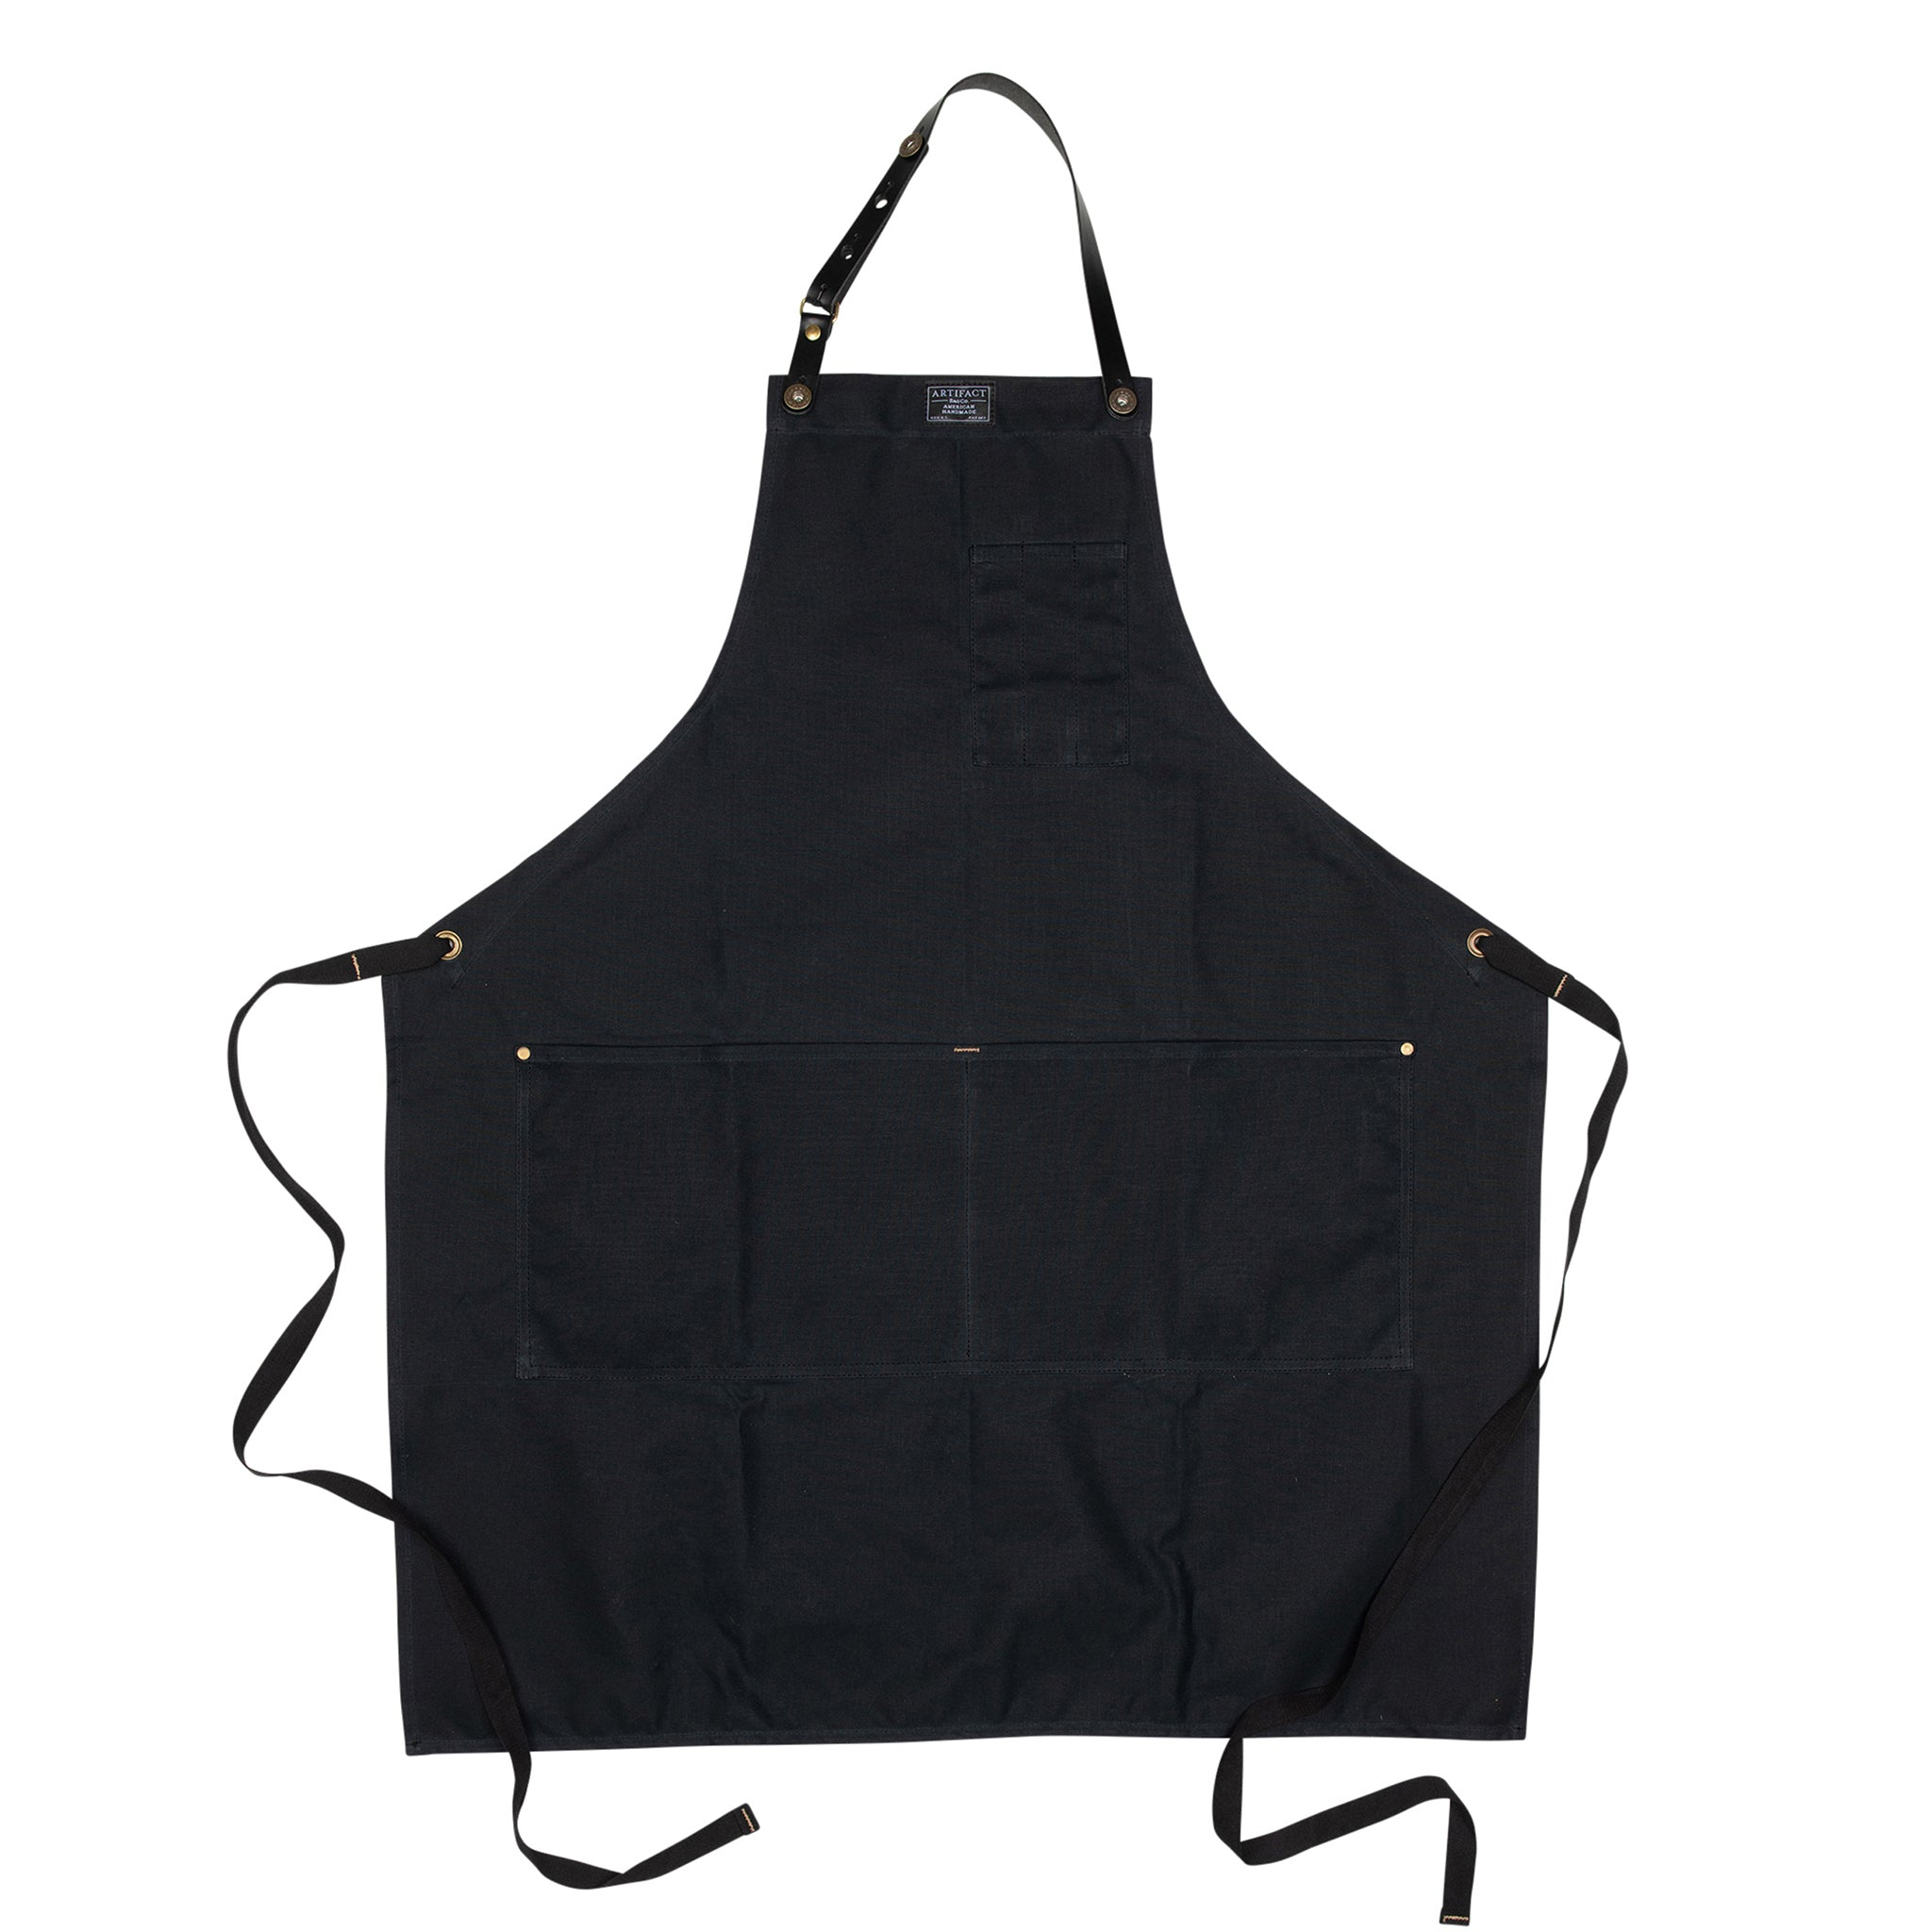 Artifact Slate Wax Cotton Apron w/ Leather Strap - Universal Fit